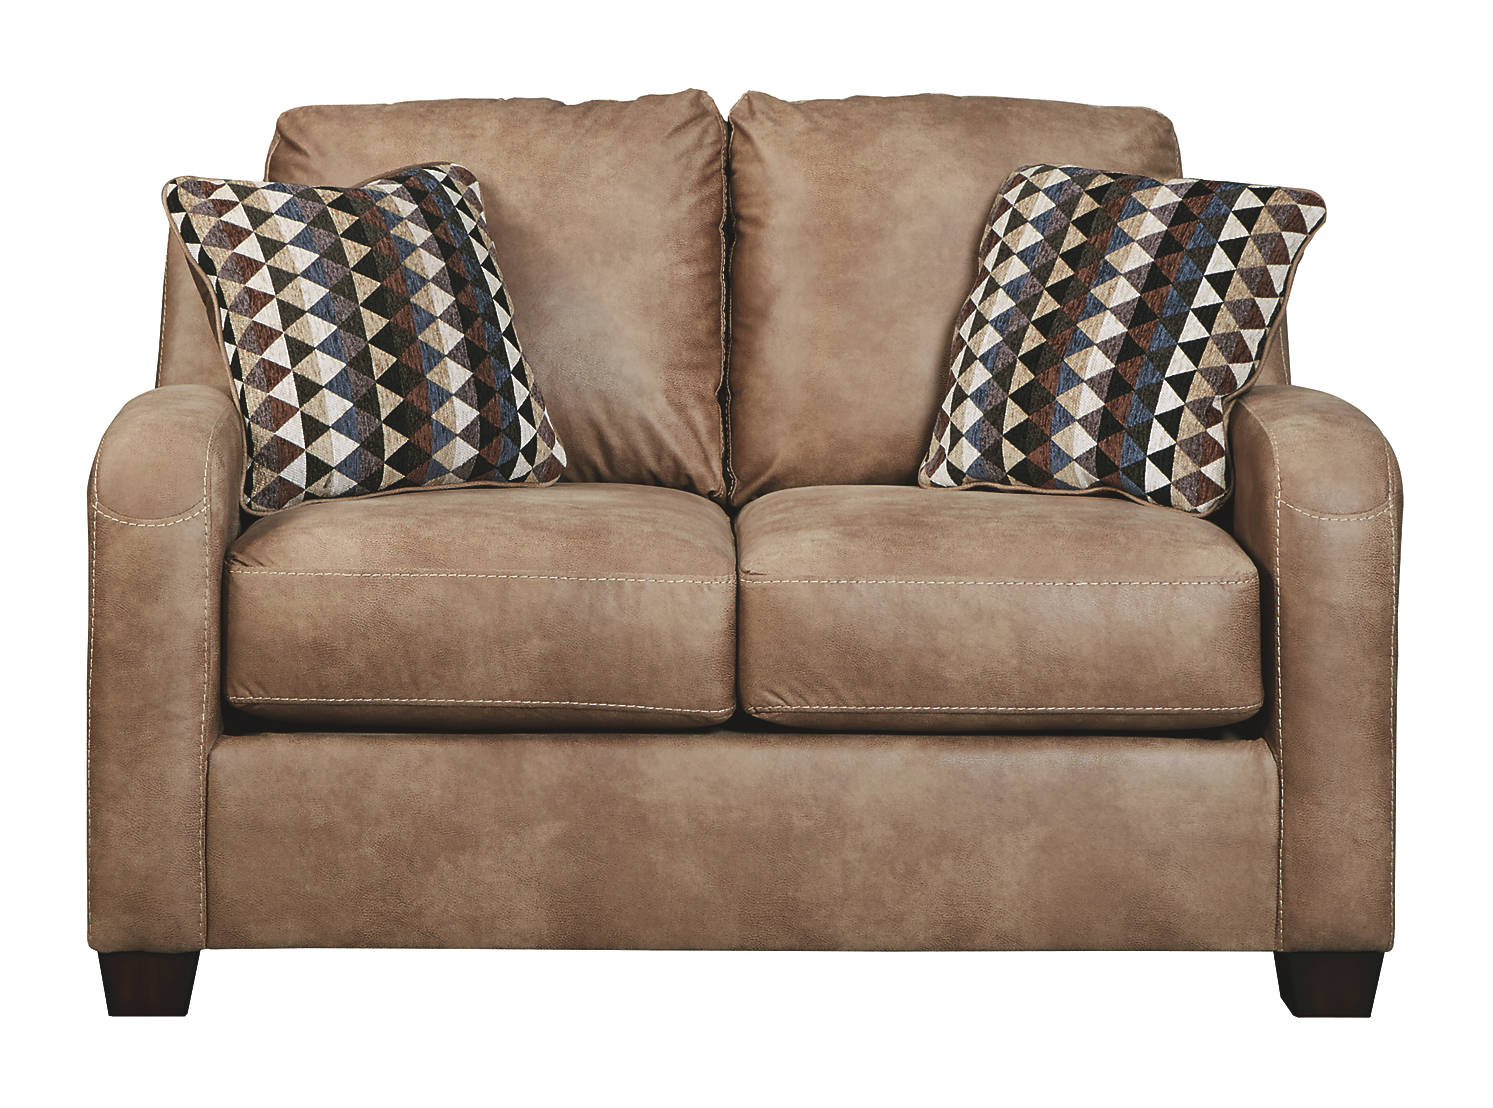 Benchcraft Alturo Fabric Solid Contemporary Loveseat